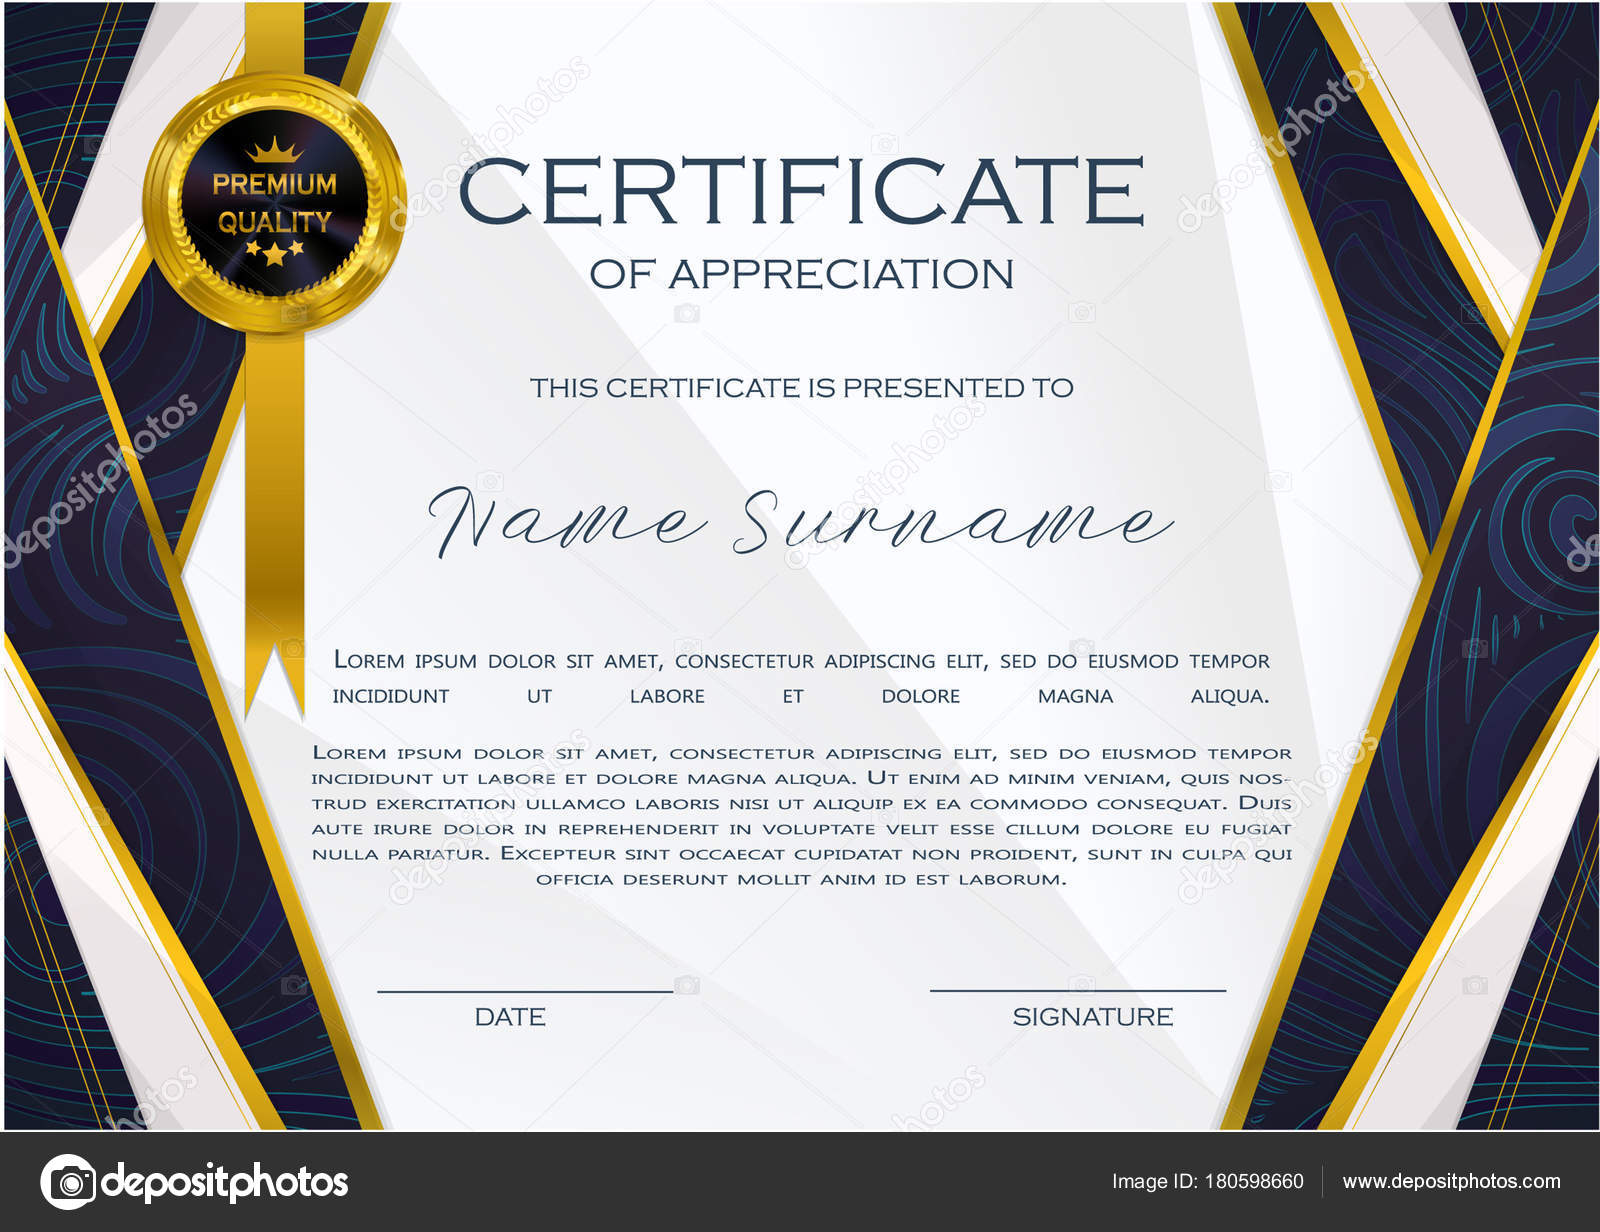 Qualification certificate appreciation design elegant luxury qualification certificate appreciation design elegant luxury modern pattern best quality stock vector yelopaper Choice Image